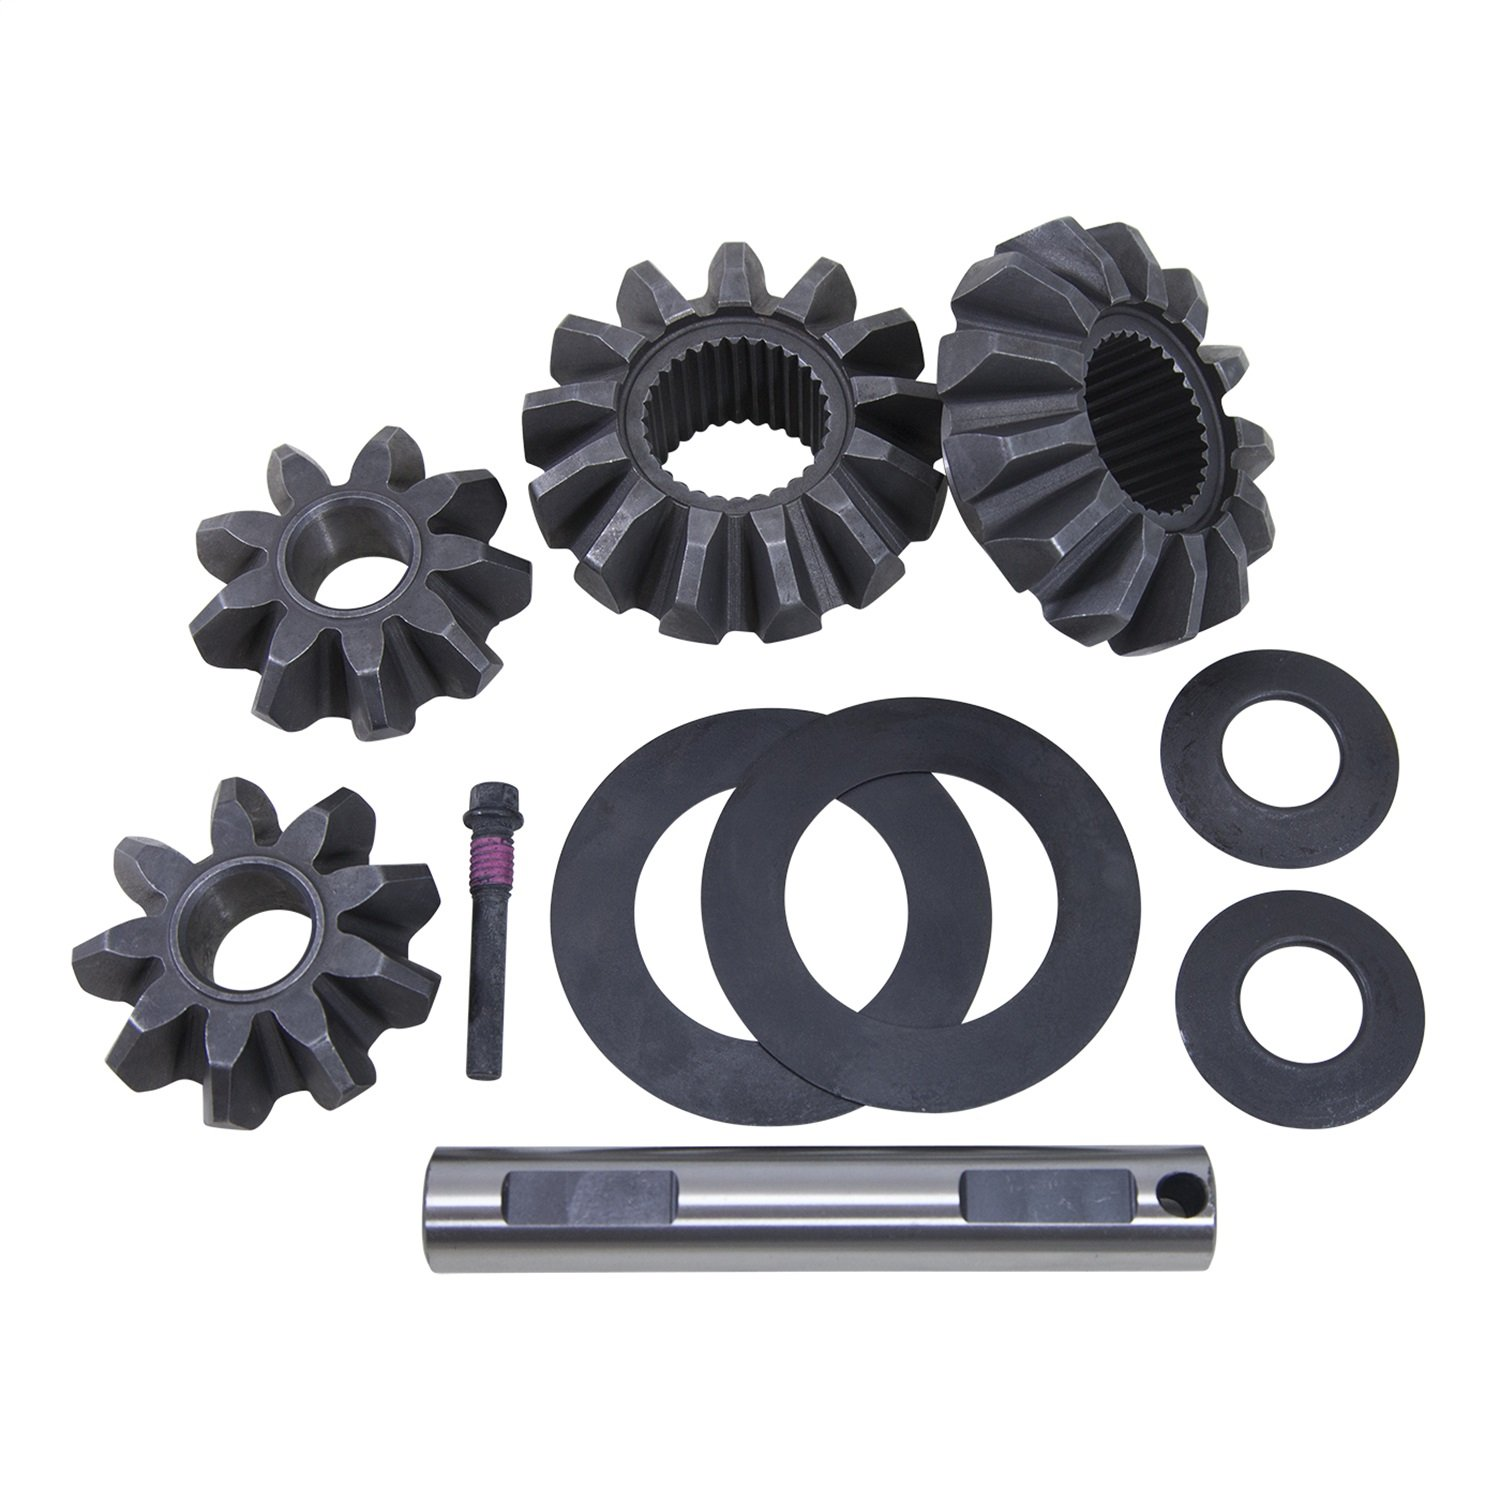 Yukon YPKGM8.5-S-30 Spider Gear Kit for GM 8.5 30-Spline Yukon Gear